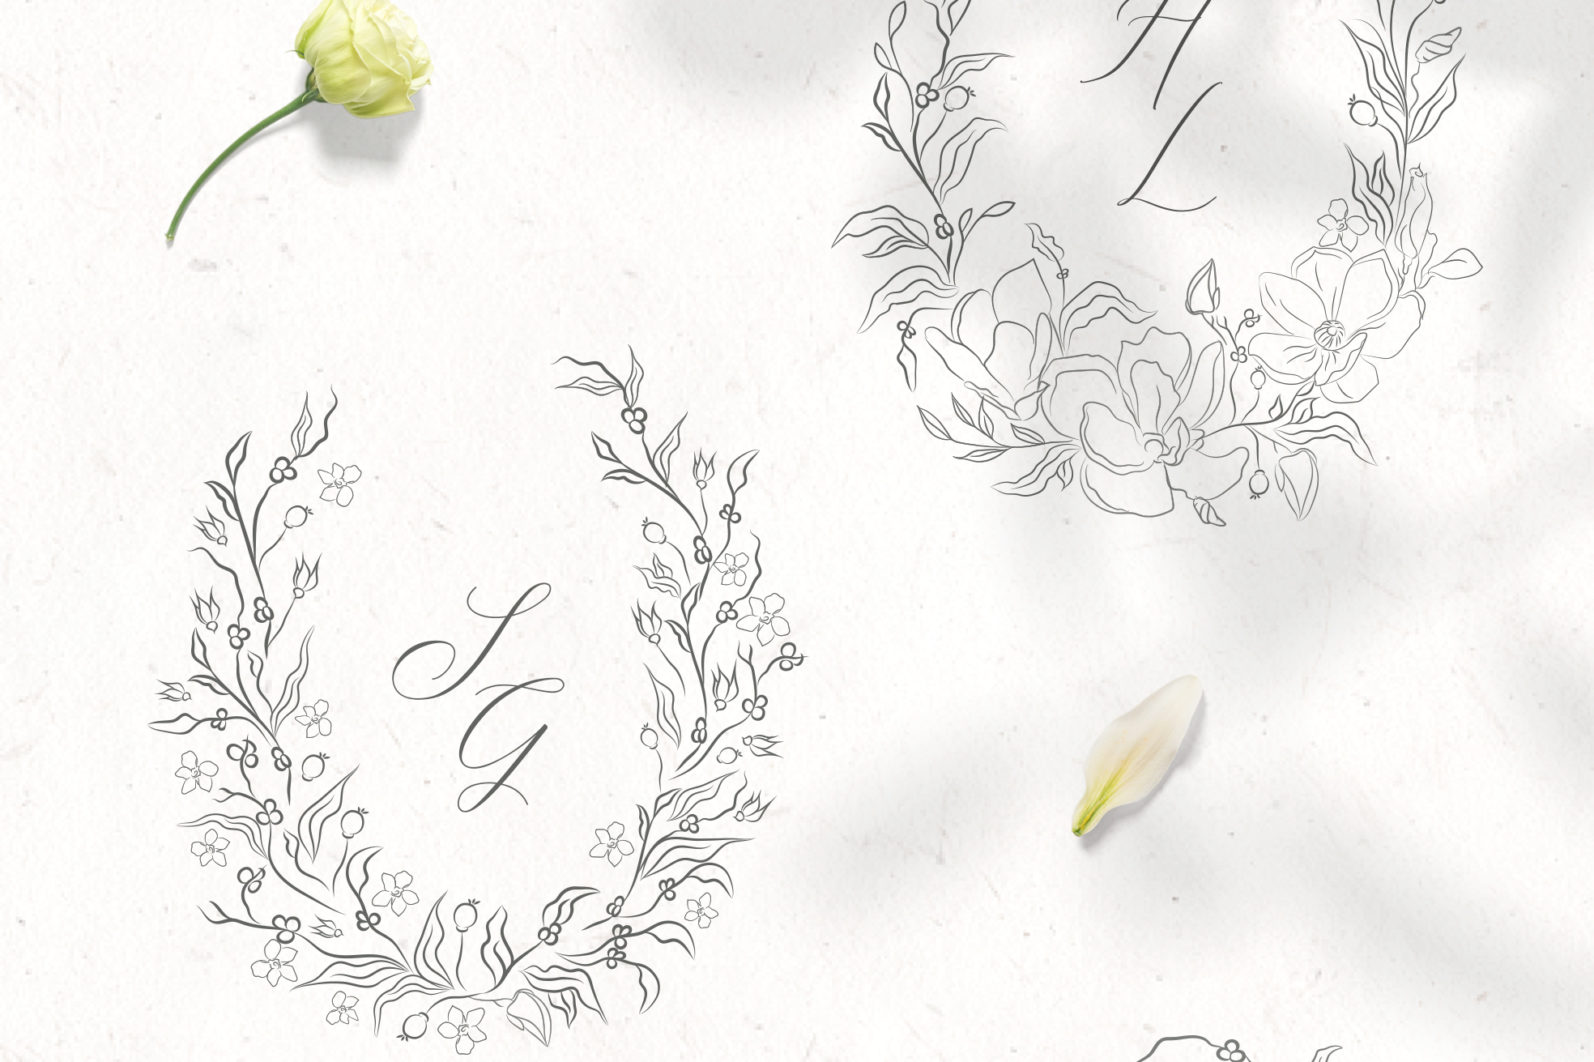 Floral Decorative Ornate Wreaths - ornate wreaths 1 scaled -